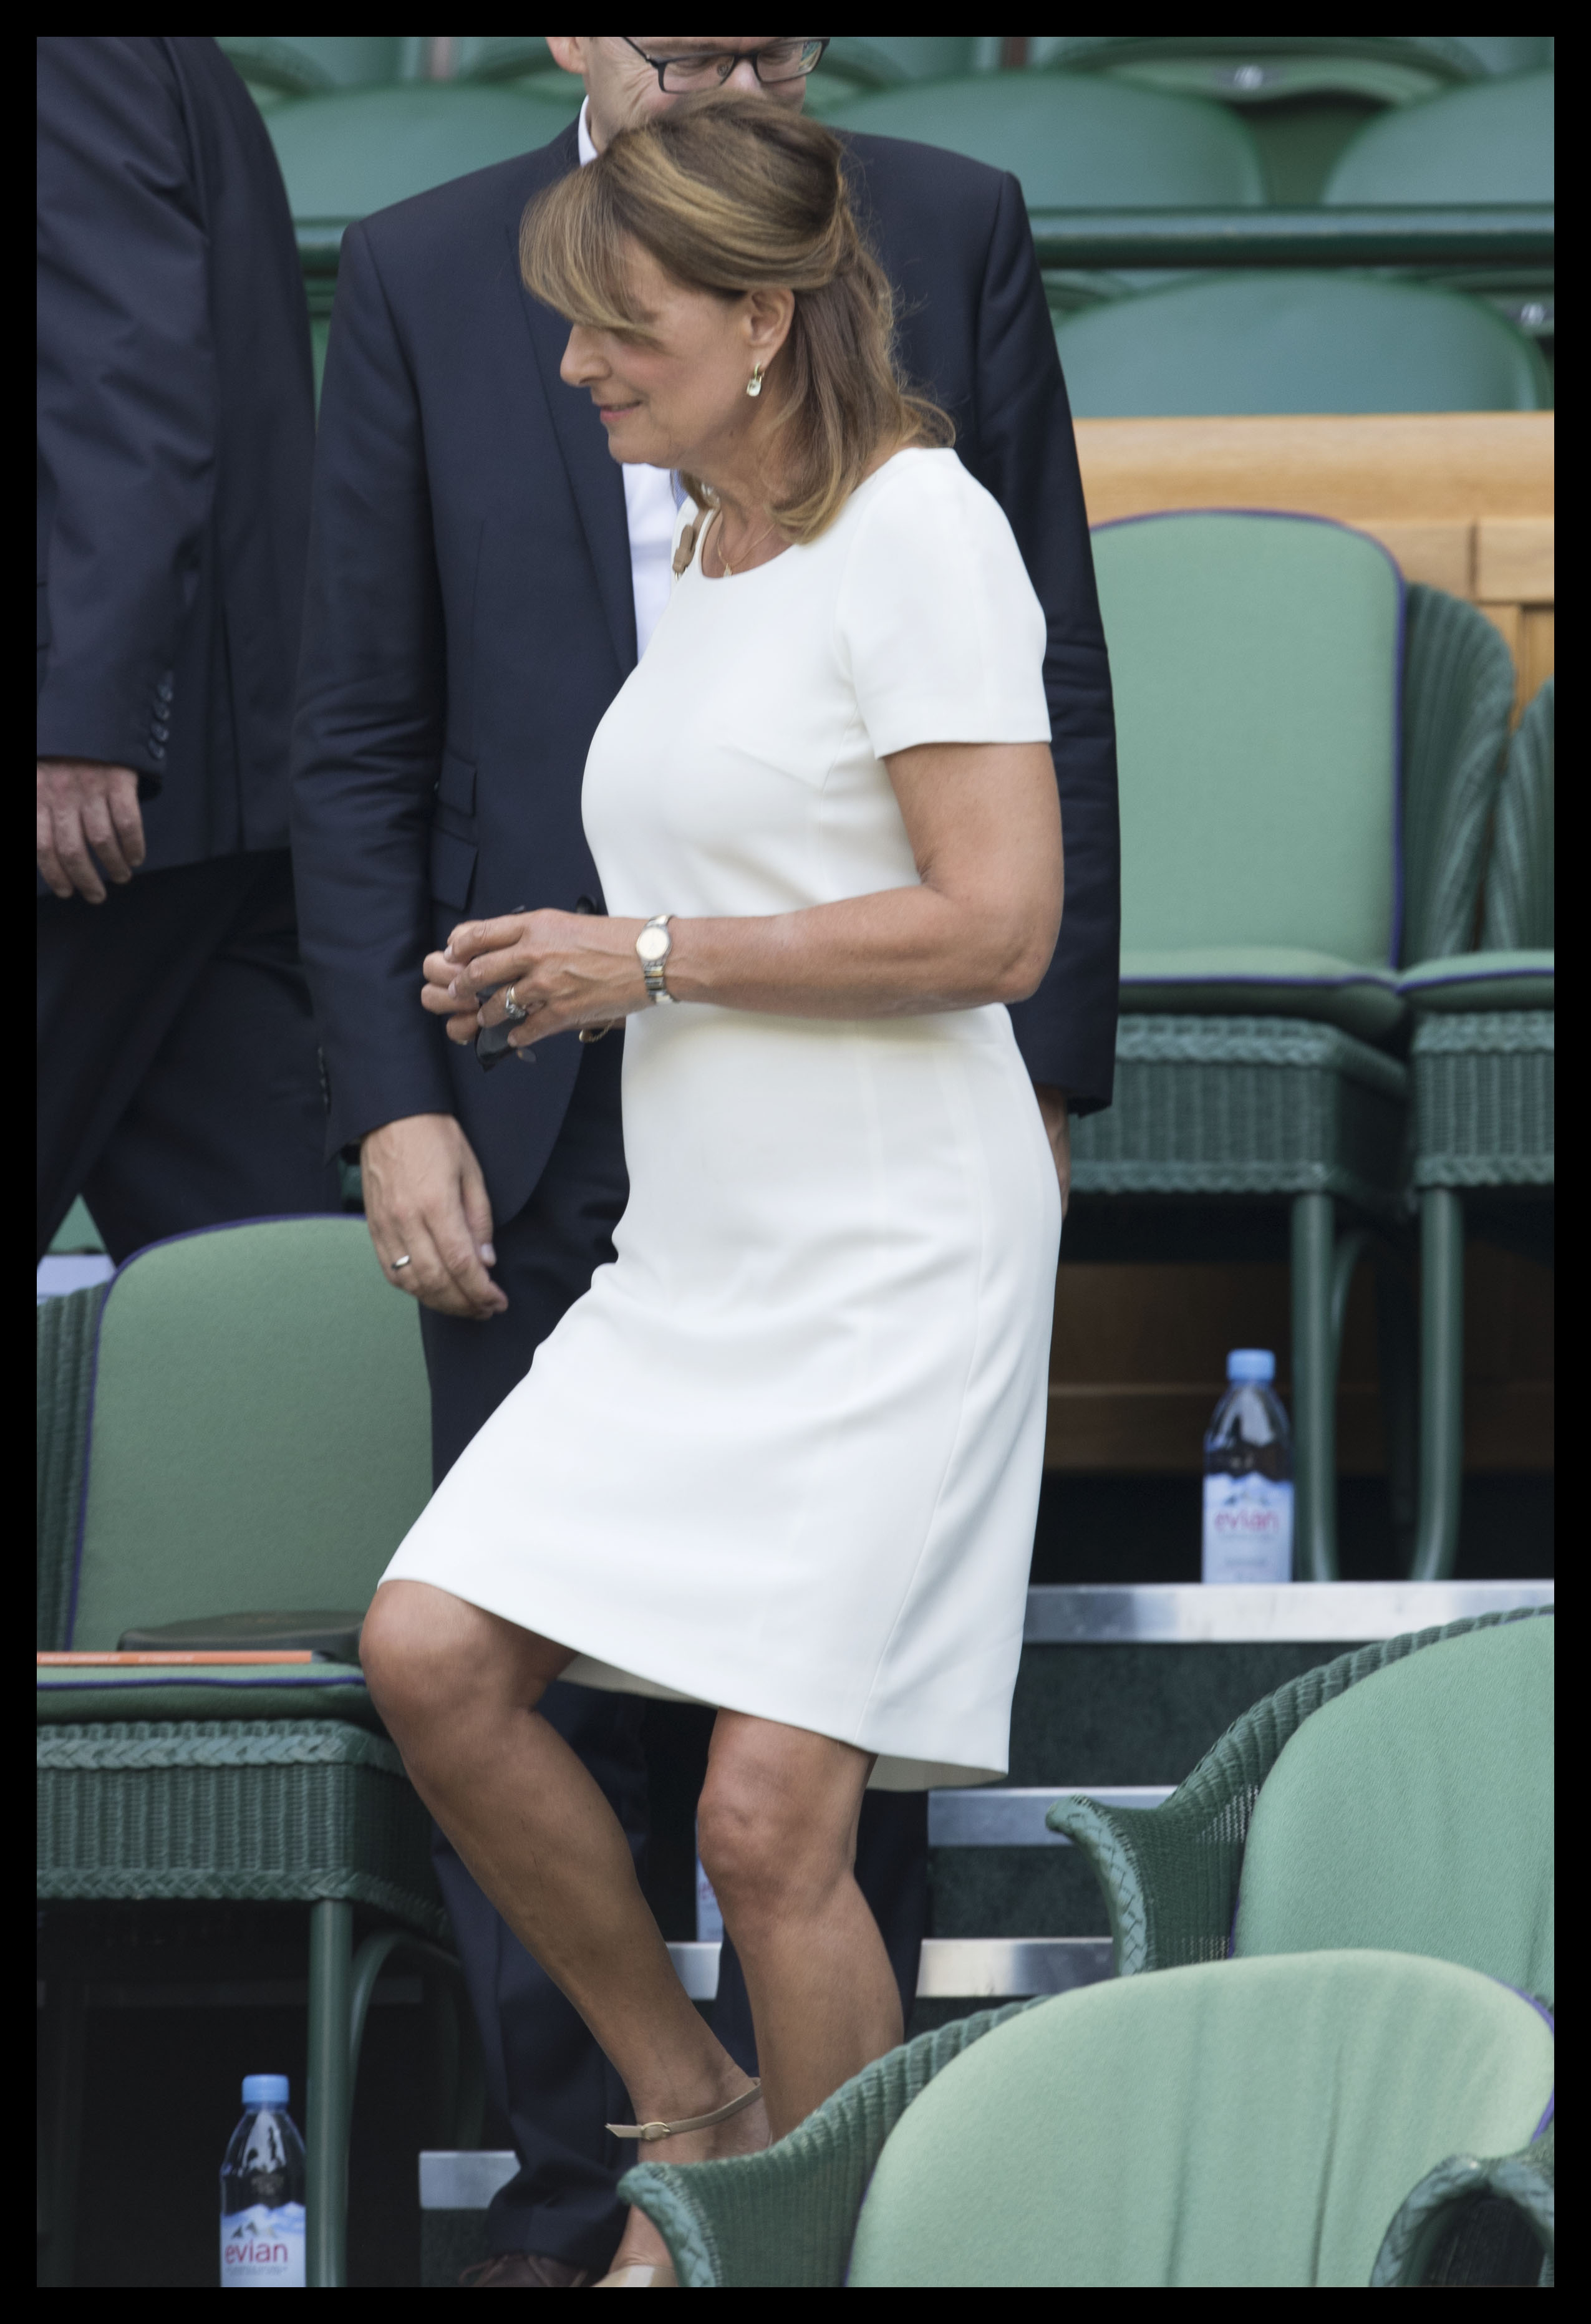 167256, Carole Middleton, the mother of the Duchess of Cambridge and Pippa Middleton, spectates from the Royal box on day four of the Wimbledon Tennis Championships. London, United Kingdom - Thursday July 6, 2017. UK, FRANCE, AUS, NZ, CHINA, HONG KONG, TAIWAN, SPAIN & ITALY OUT, Image: 341089256, License: Rights-managed, Restrictions: RESTRICTIONS APPLY, Model Release: no, Credit line: Profimedia, Pacific coast news